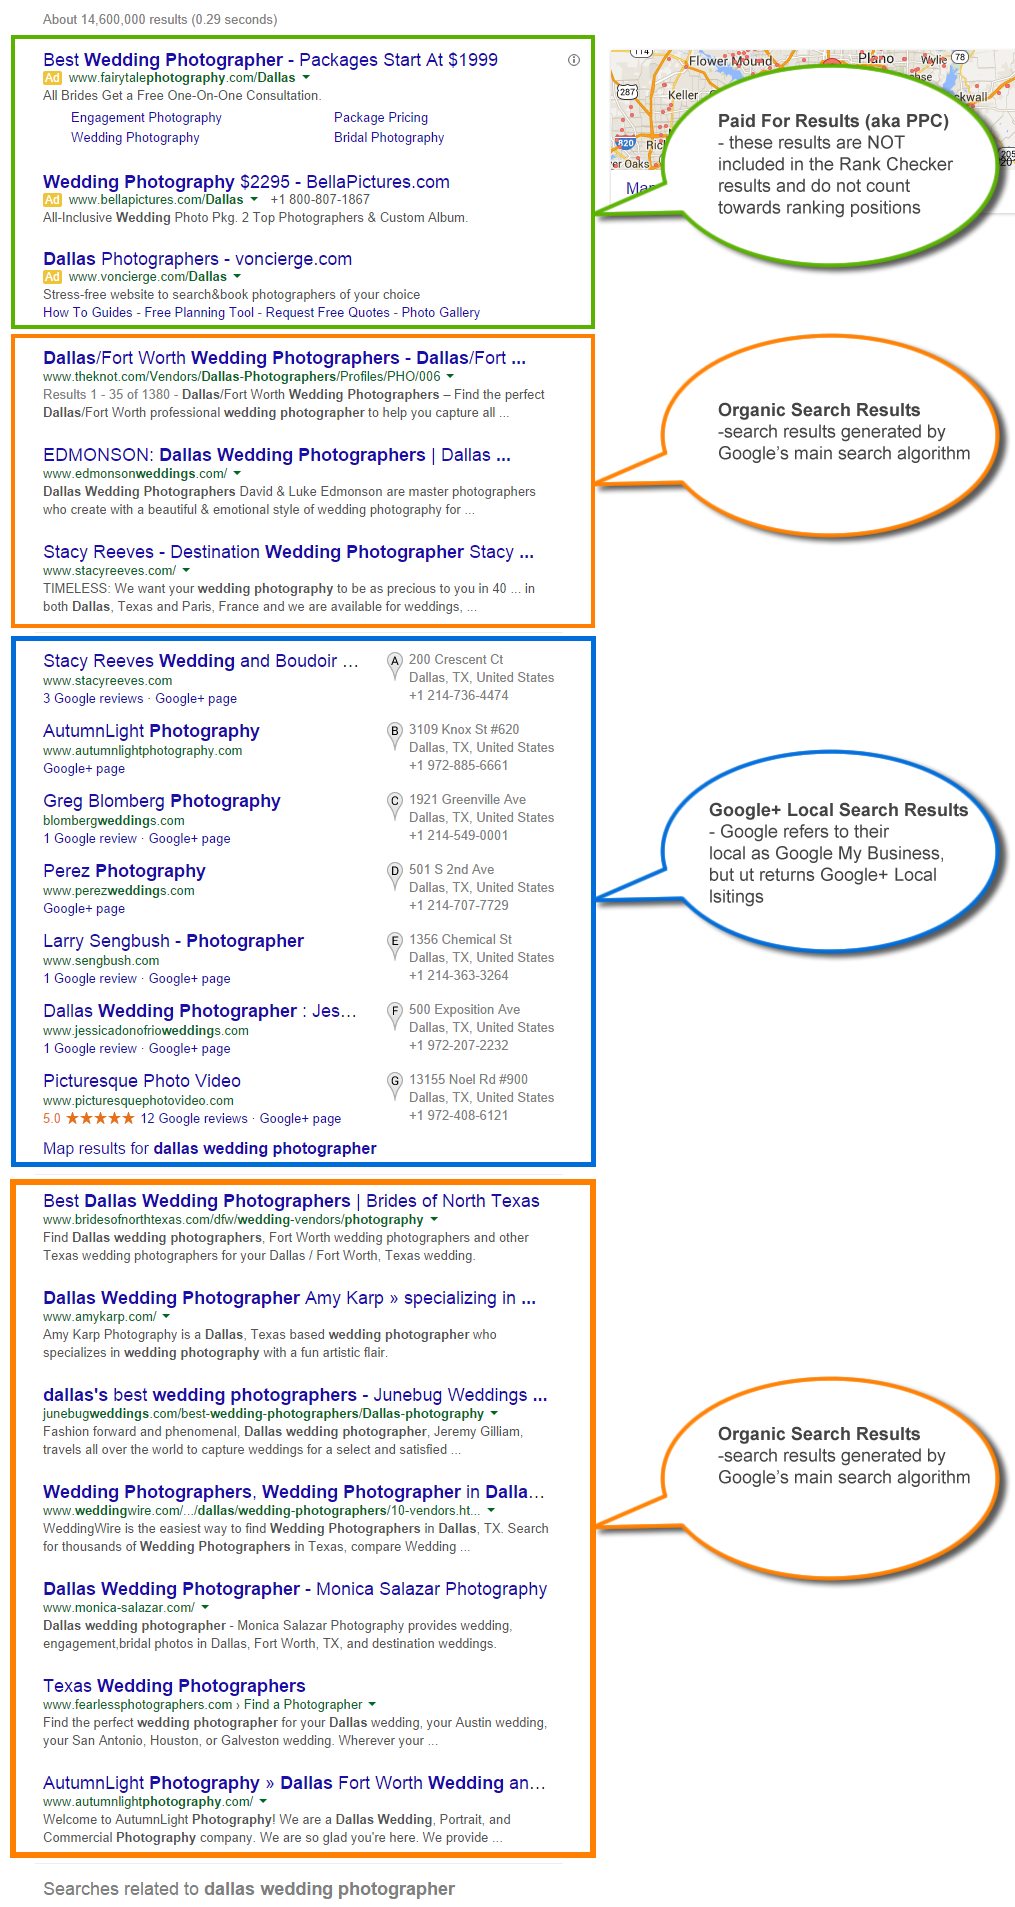 Guide to Google Blended Search Results